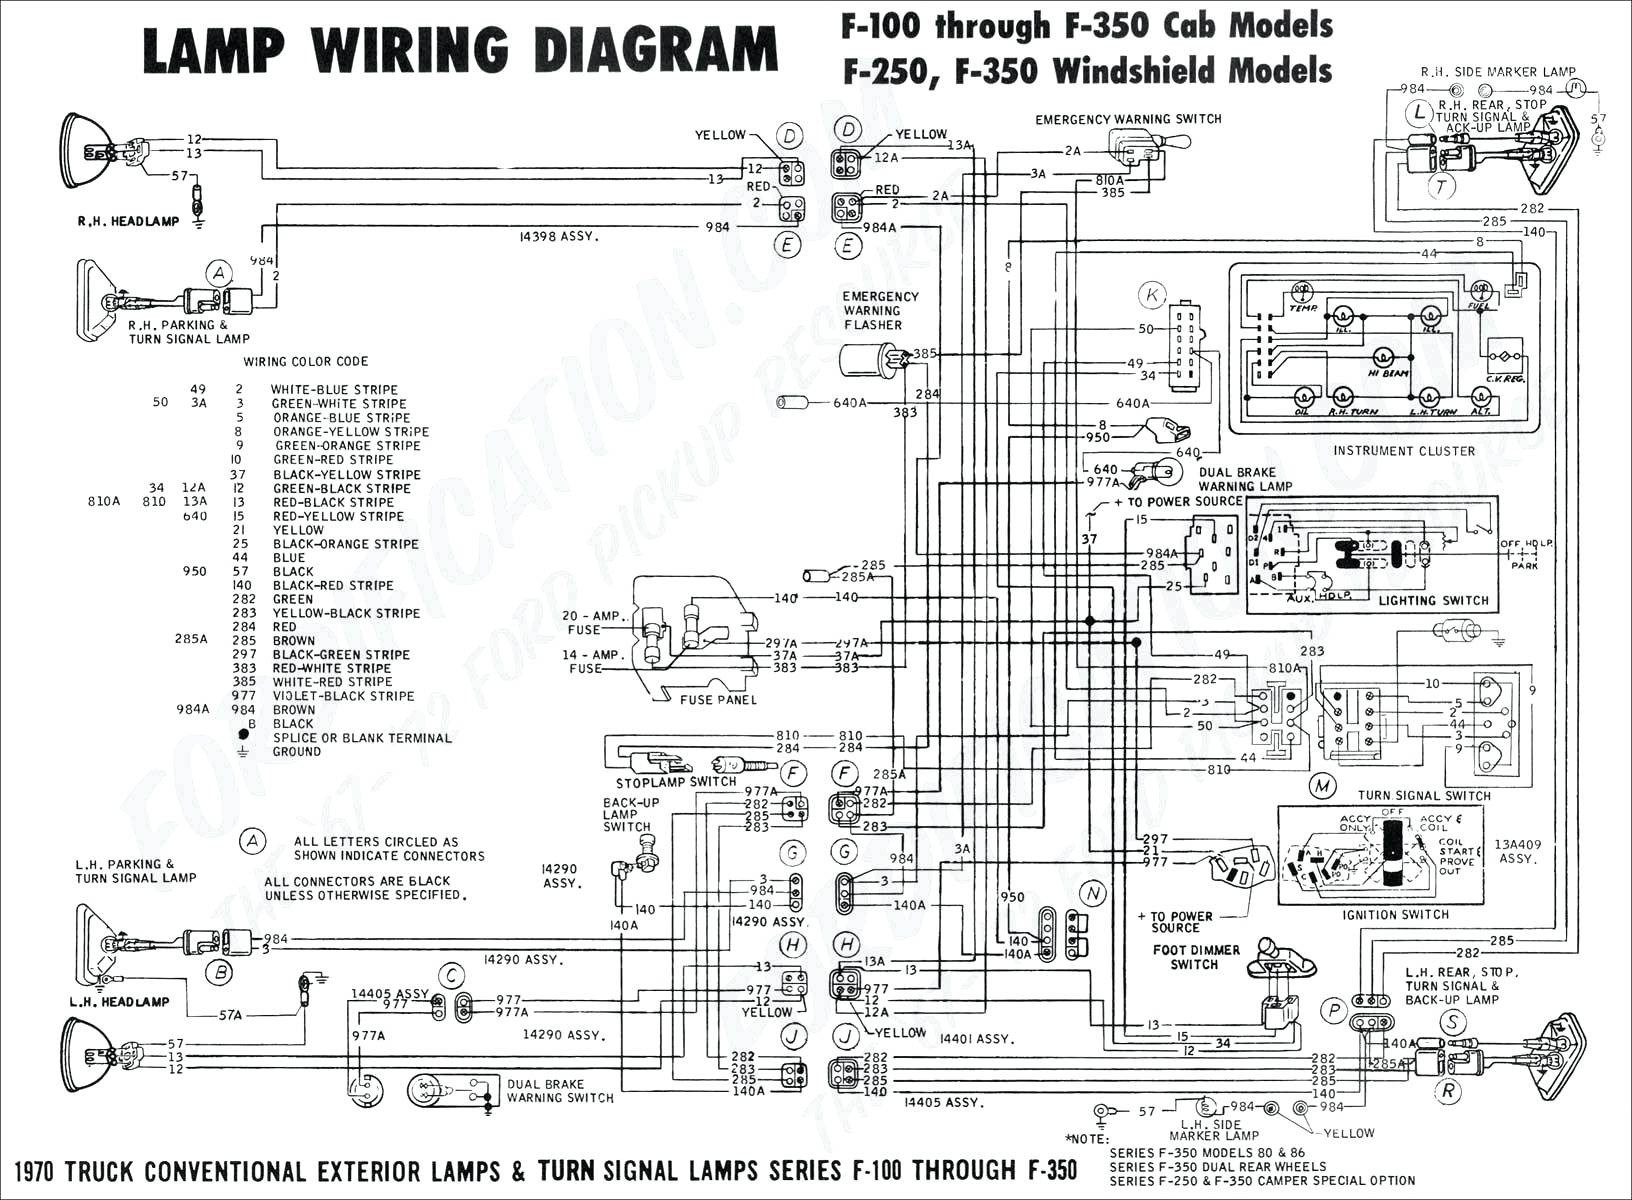 2013 ford f53 brake position switch wiring diagram - wiring diagrams  brief-metal-a - brief-metal-a.alcuoredeldiabete.it  al cuore del diabete